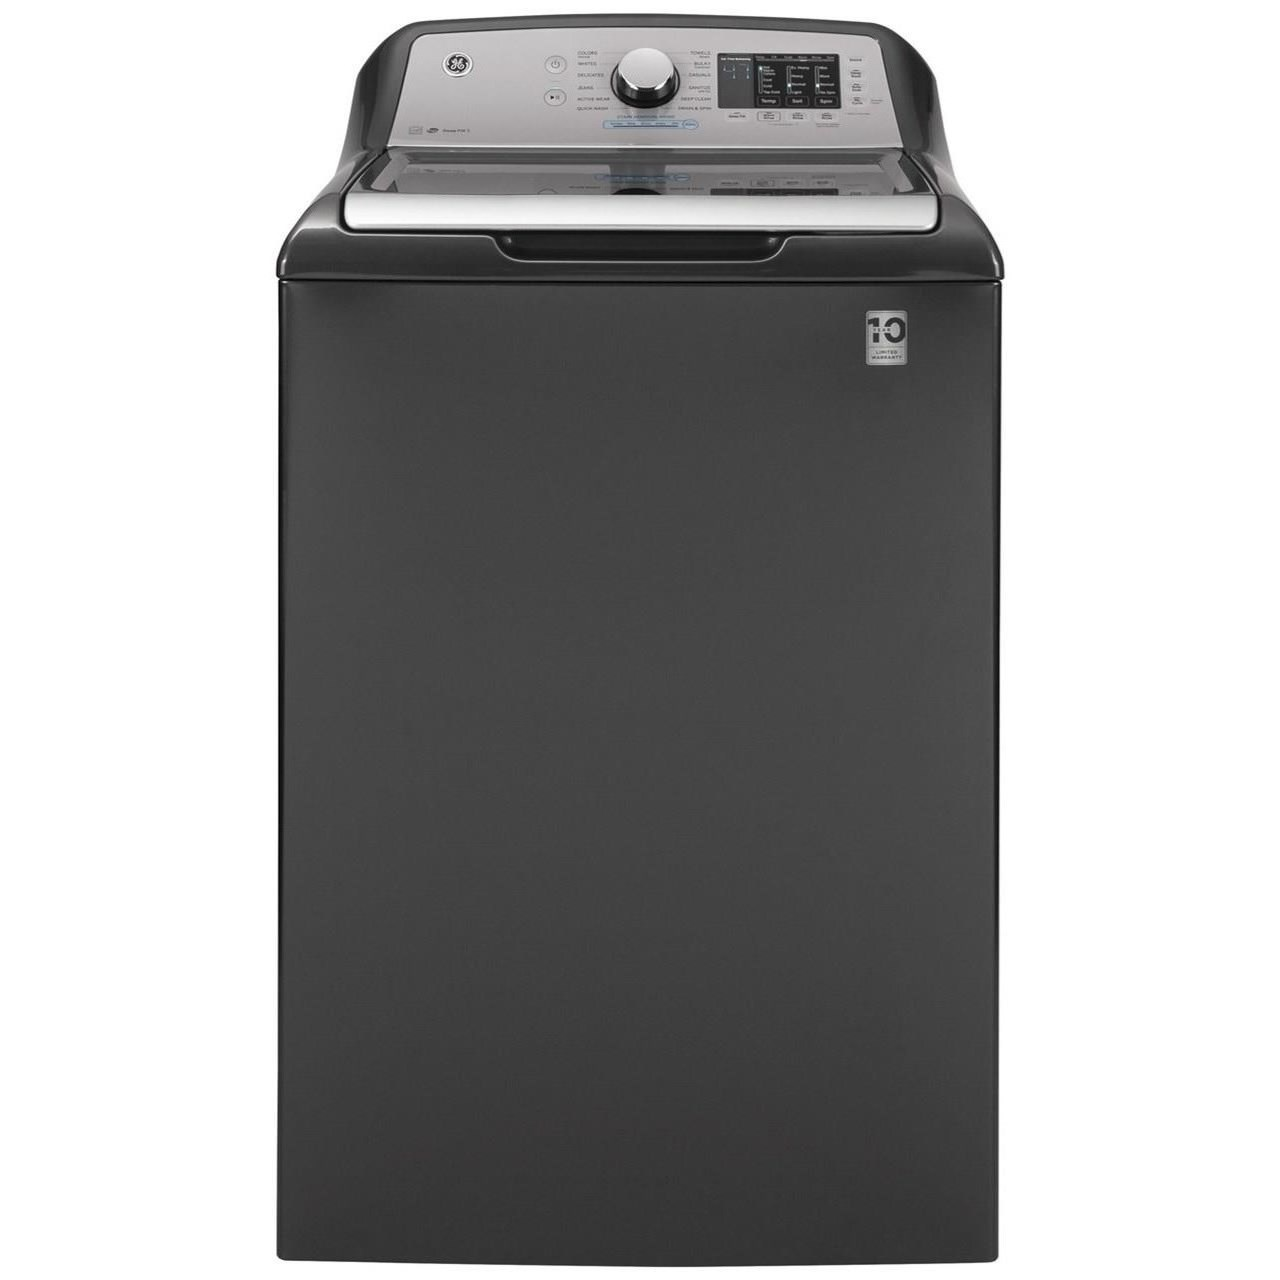 Home Laundry GE® 4.8 cu. ft. Capacity Washer by GE Appliances at Furniture and ApplianceMart